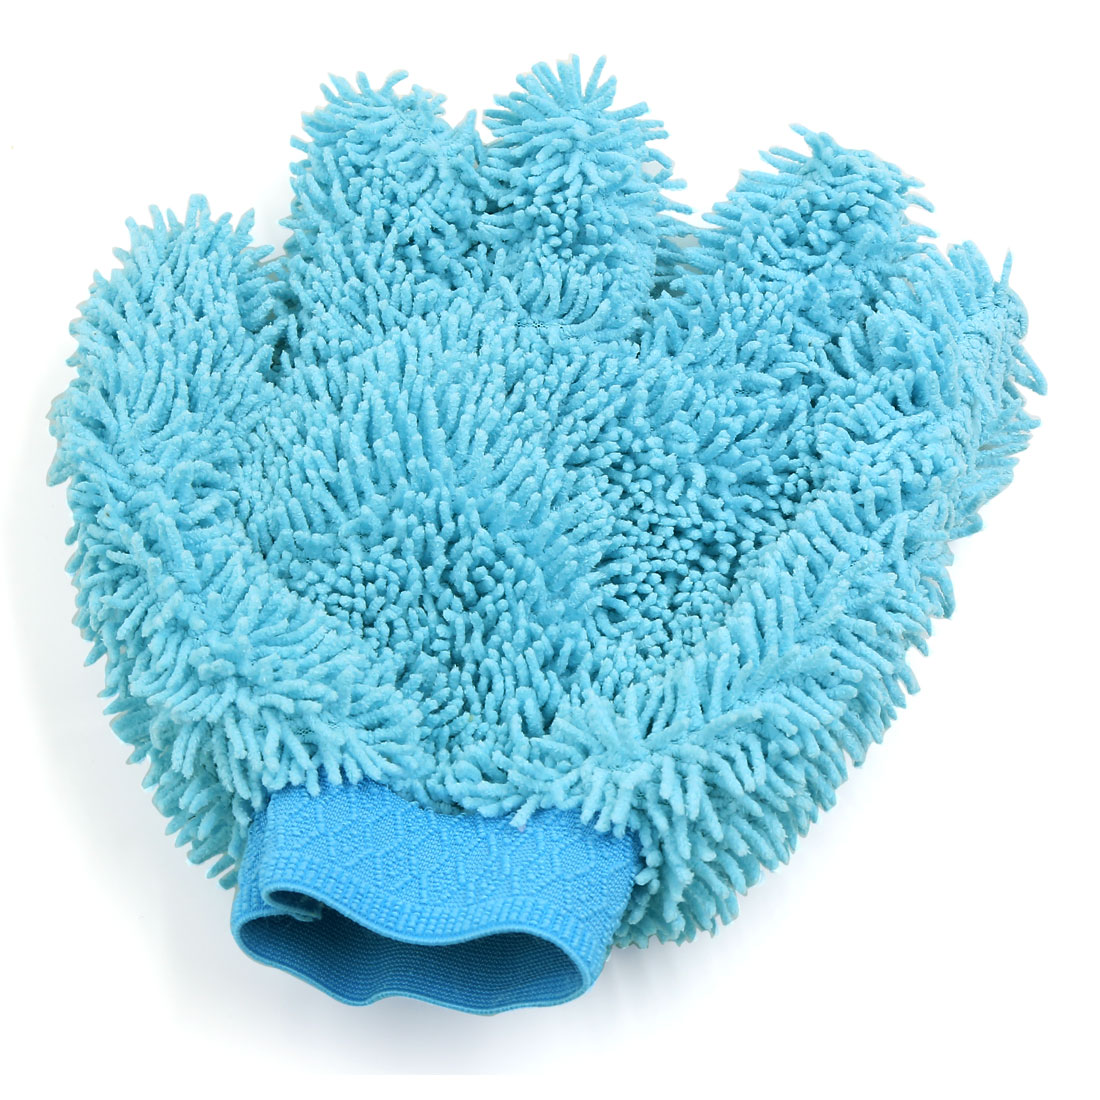 Sky Blue Five Fingers Shape Microfiber Car Home Washing Cleaning Glove Cleaner